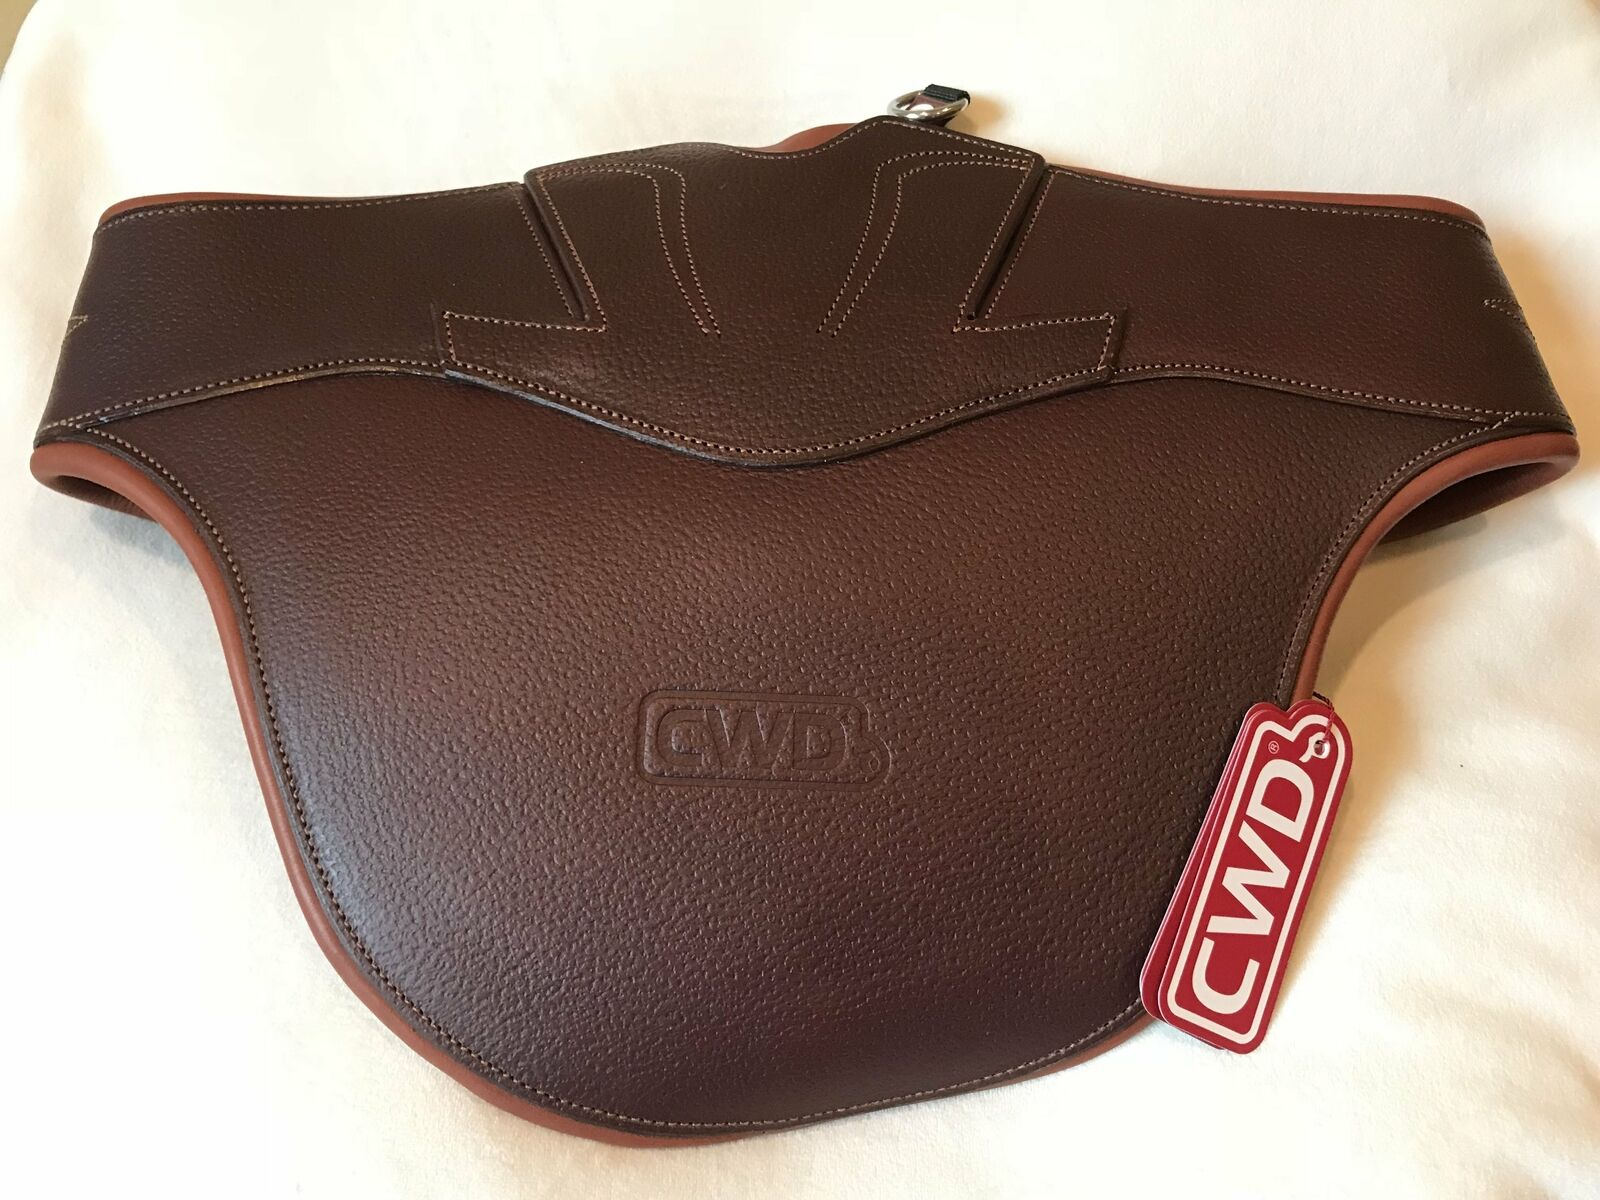 CWD Belly Guard Jumping Girth 54  (135) - New With Tags